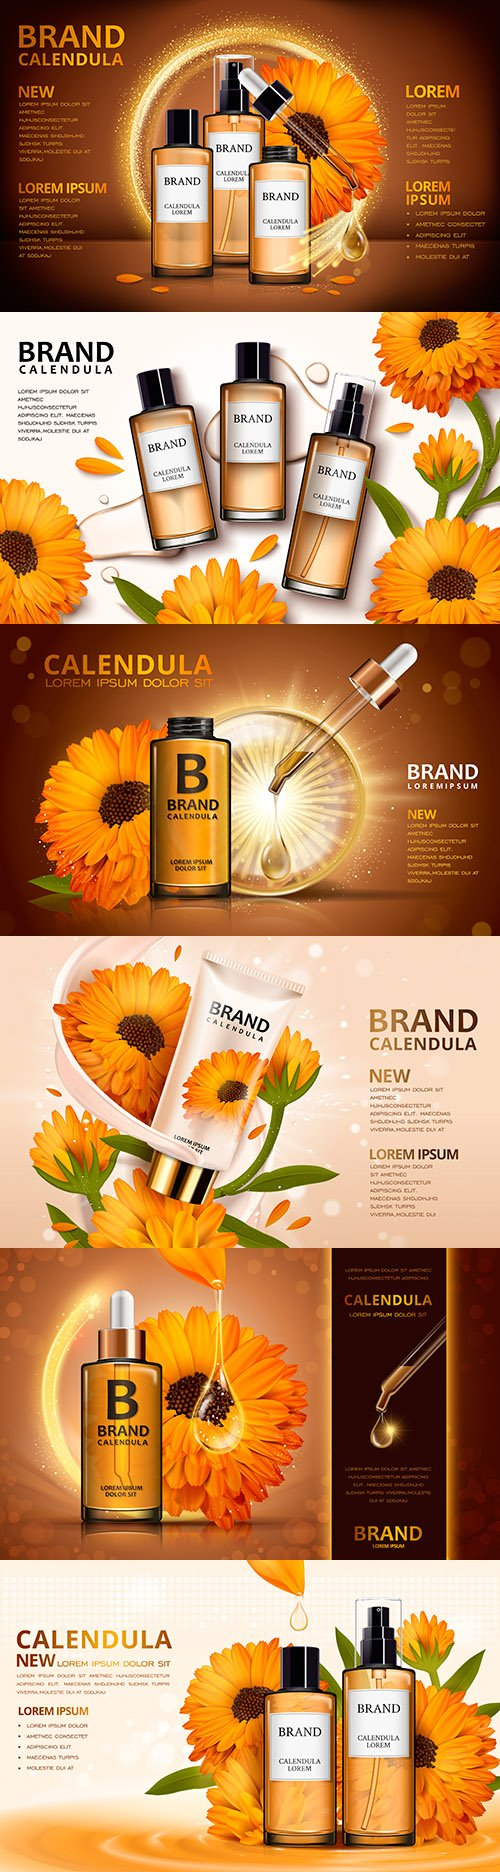 Design cosmetic advertising 3d illustrations with calendula colors